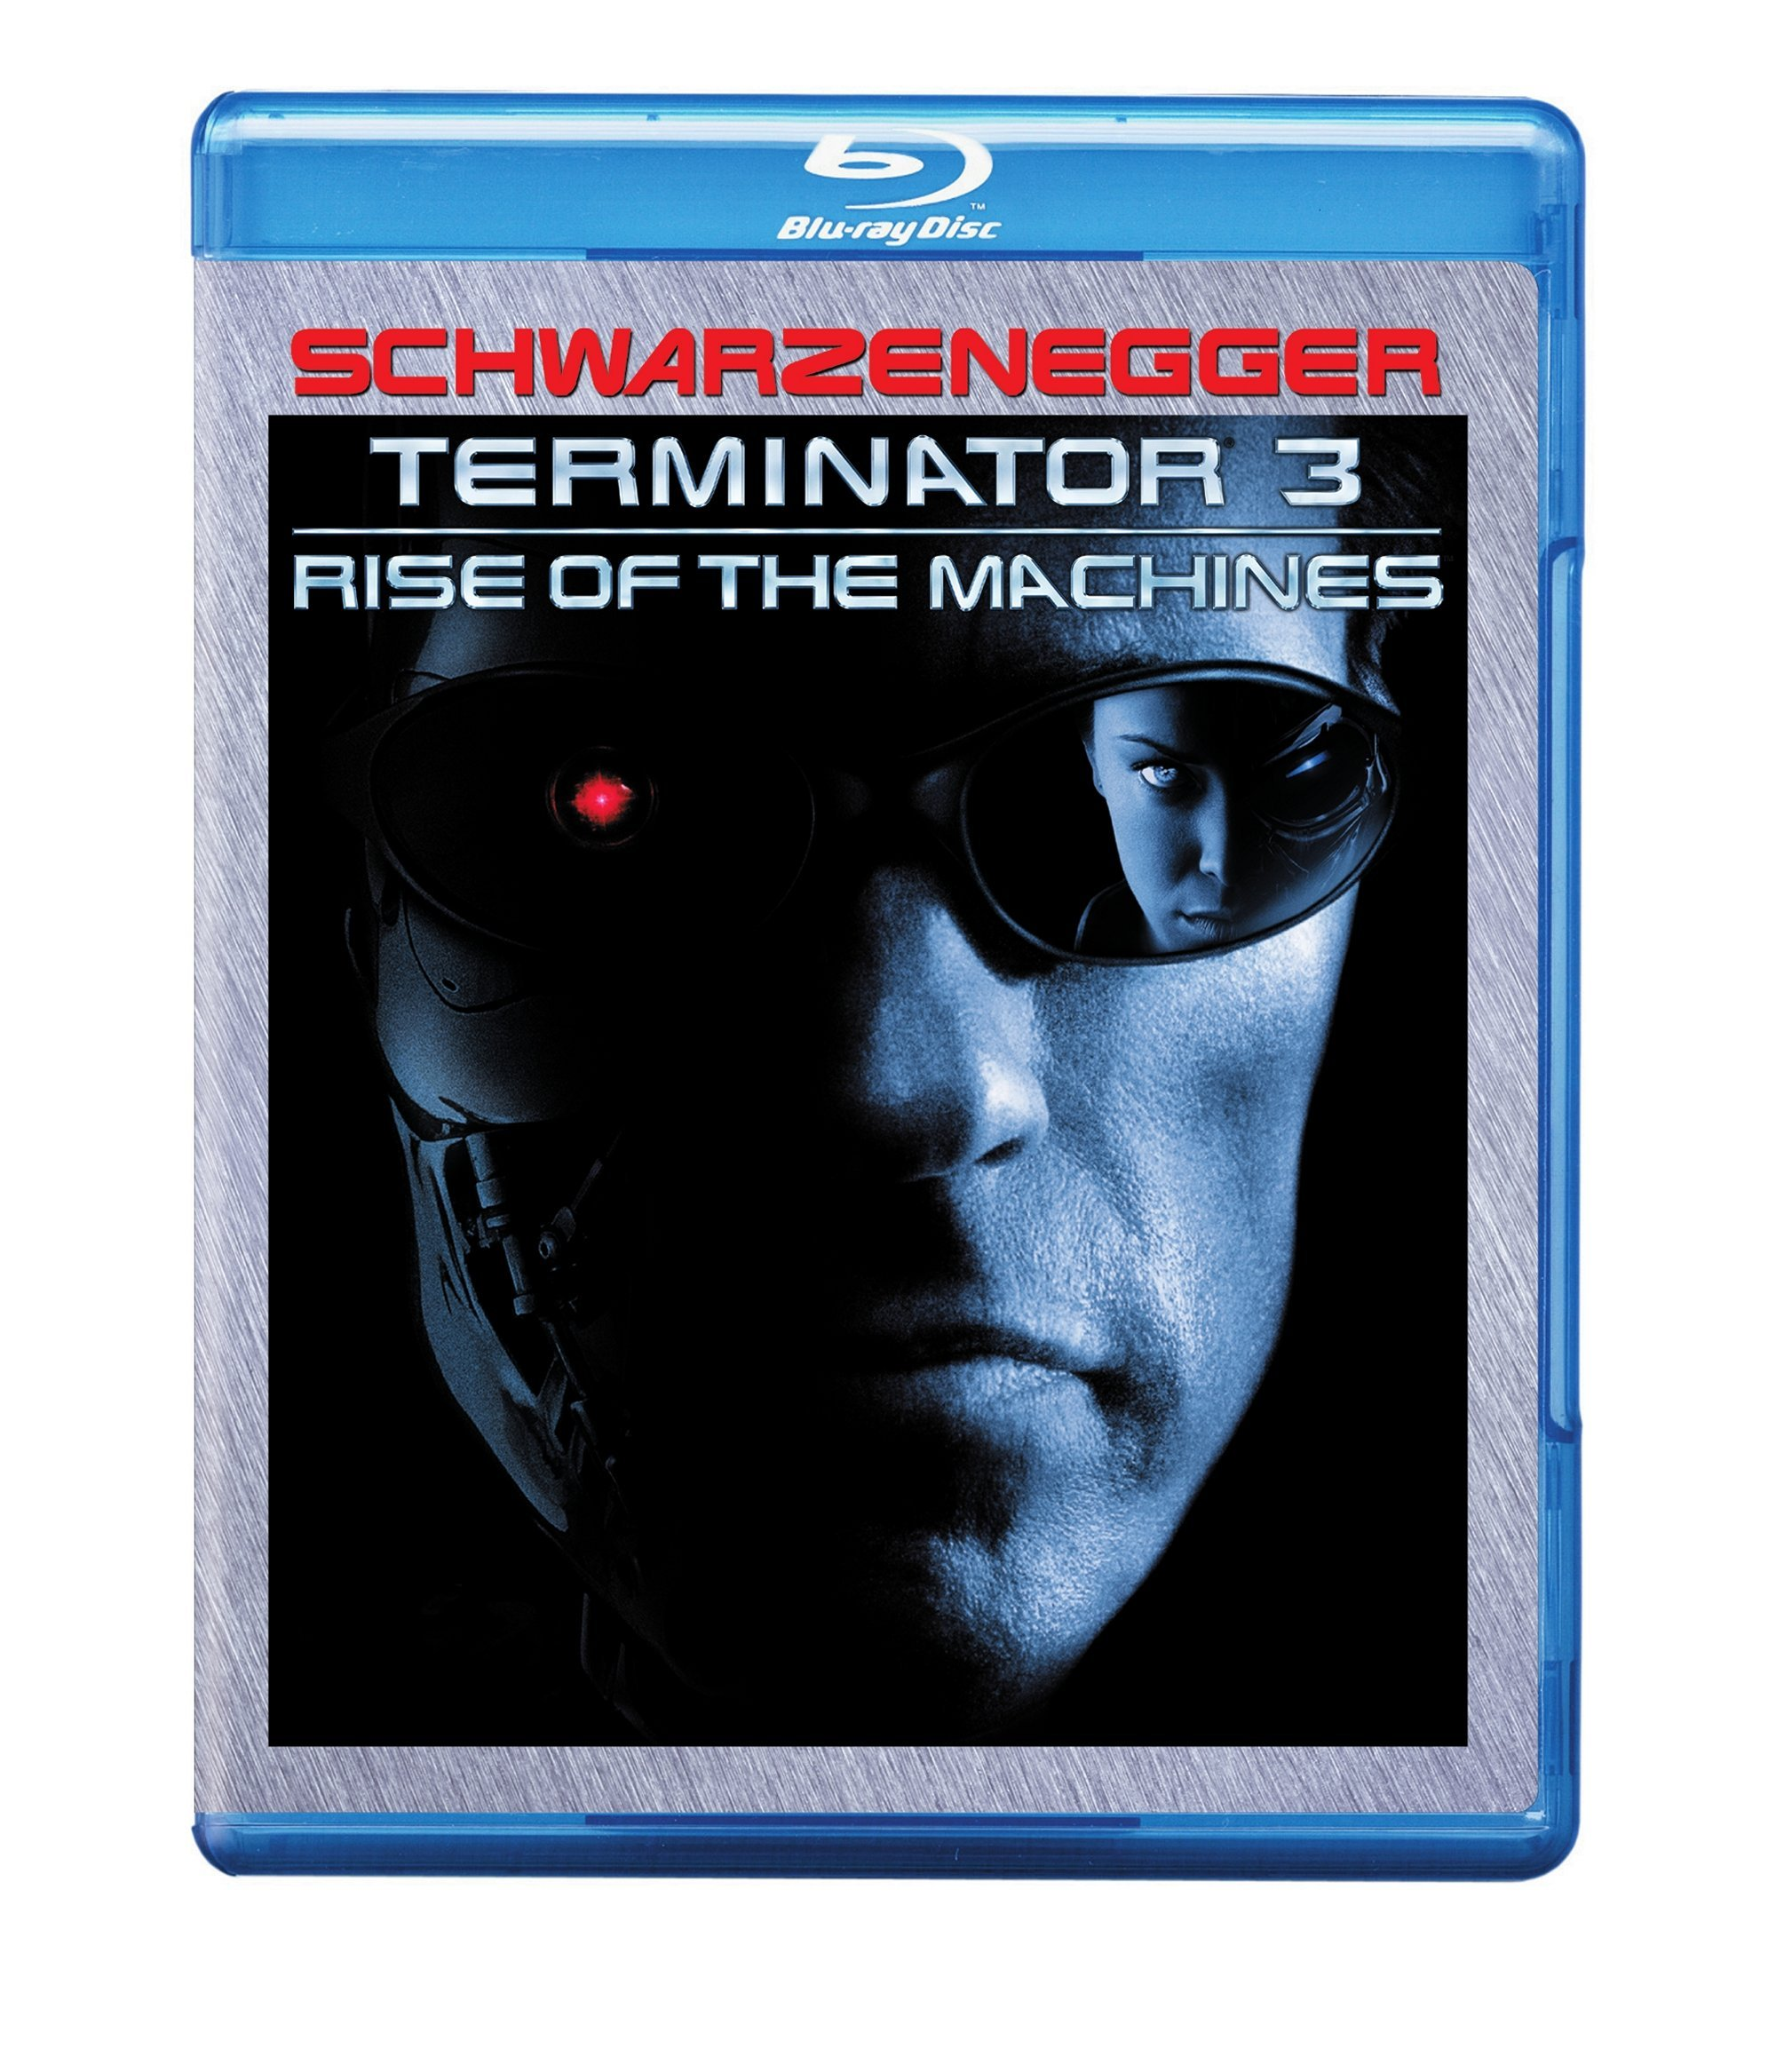 Blu-ray : Terminator 3: Rise of the Machines (AC-3, Widescreen, , Dubbed, Dolby)